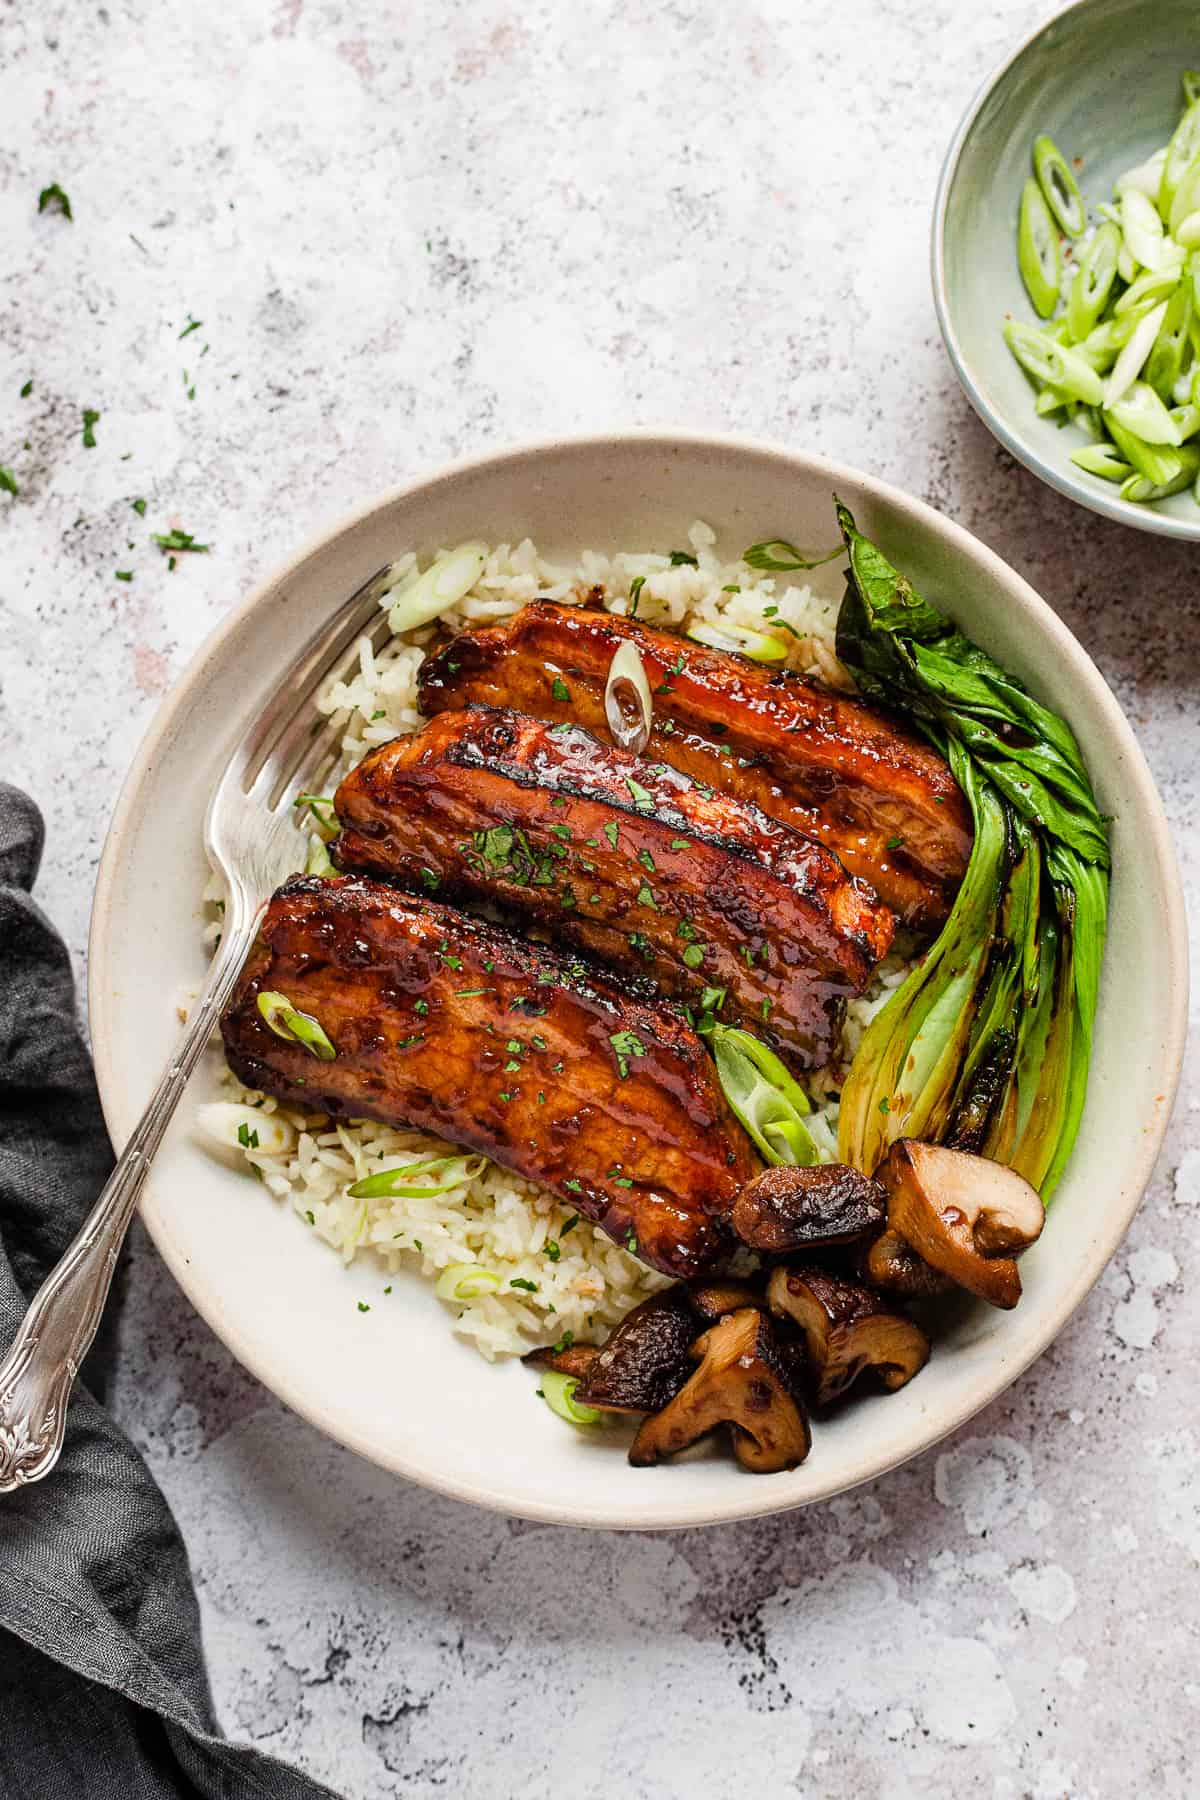 roast Pork belly slices on a bed of rice.